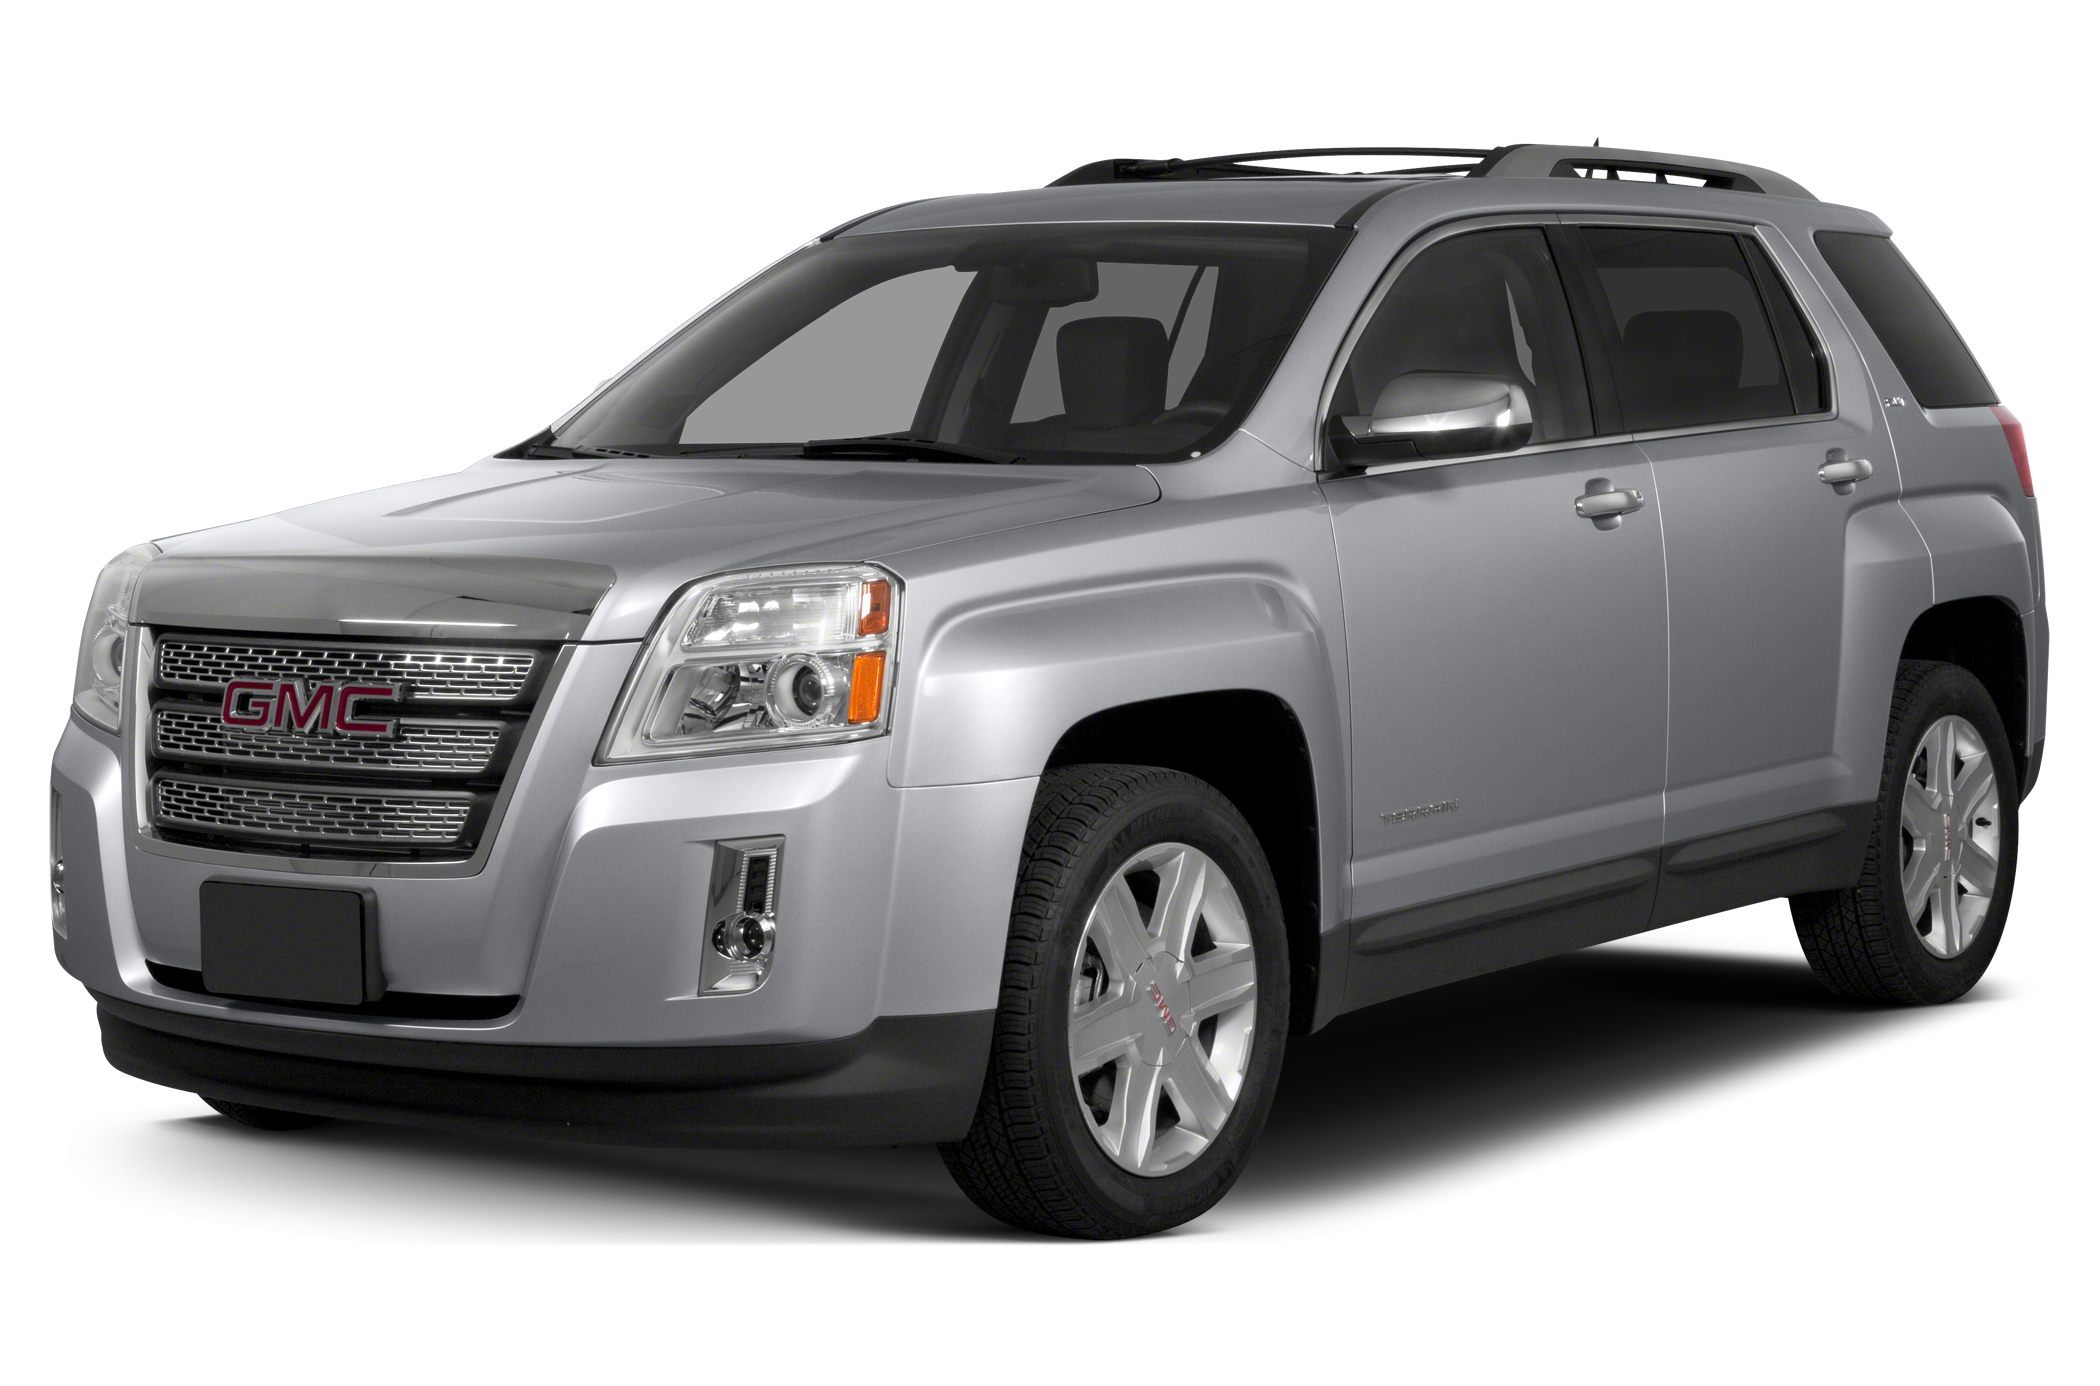 2015 GMC Terrain SLE-1 SUV for sale in Hermiston for $27,980 with 0 miles